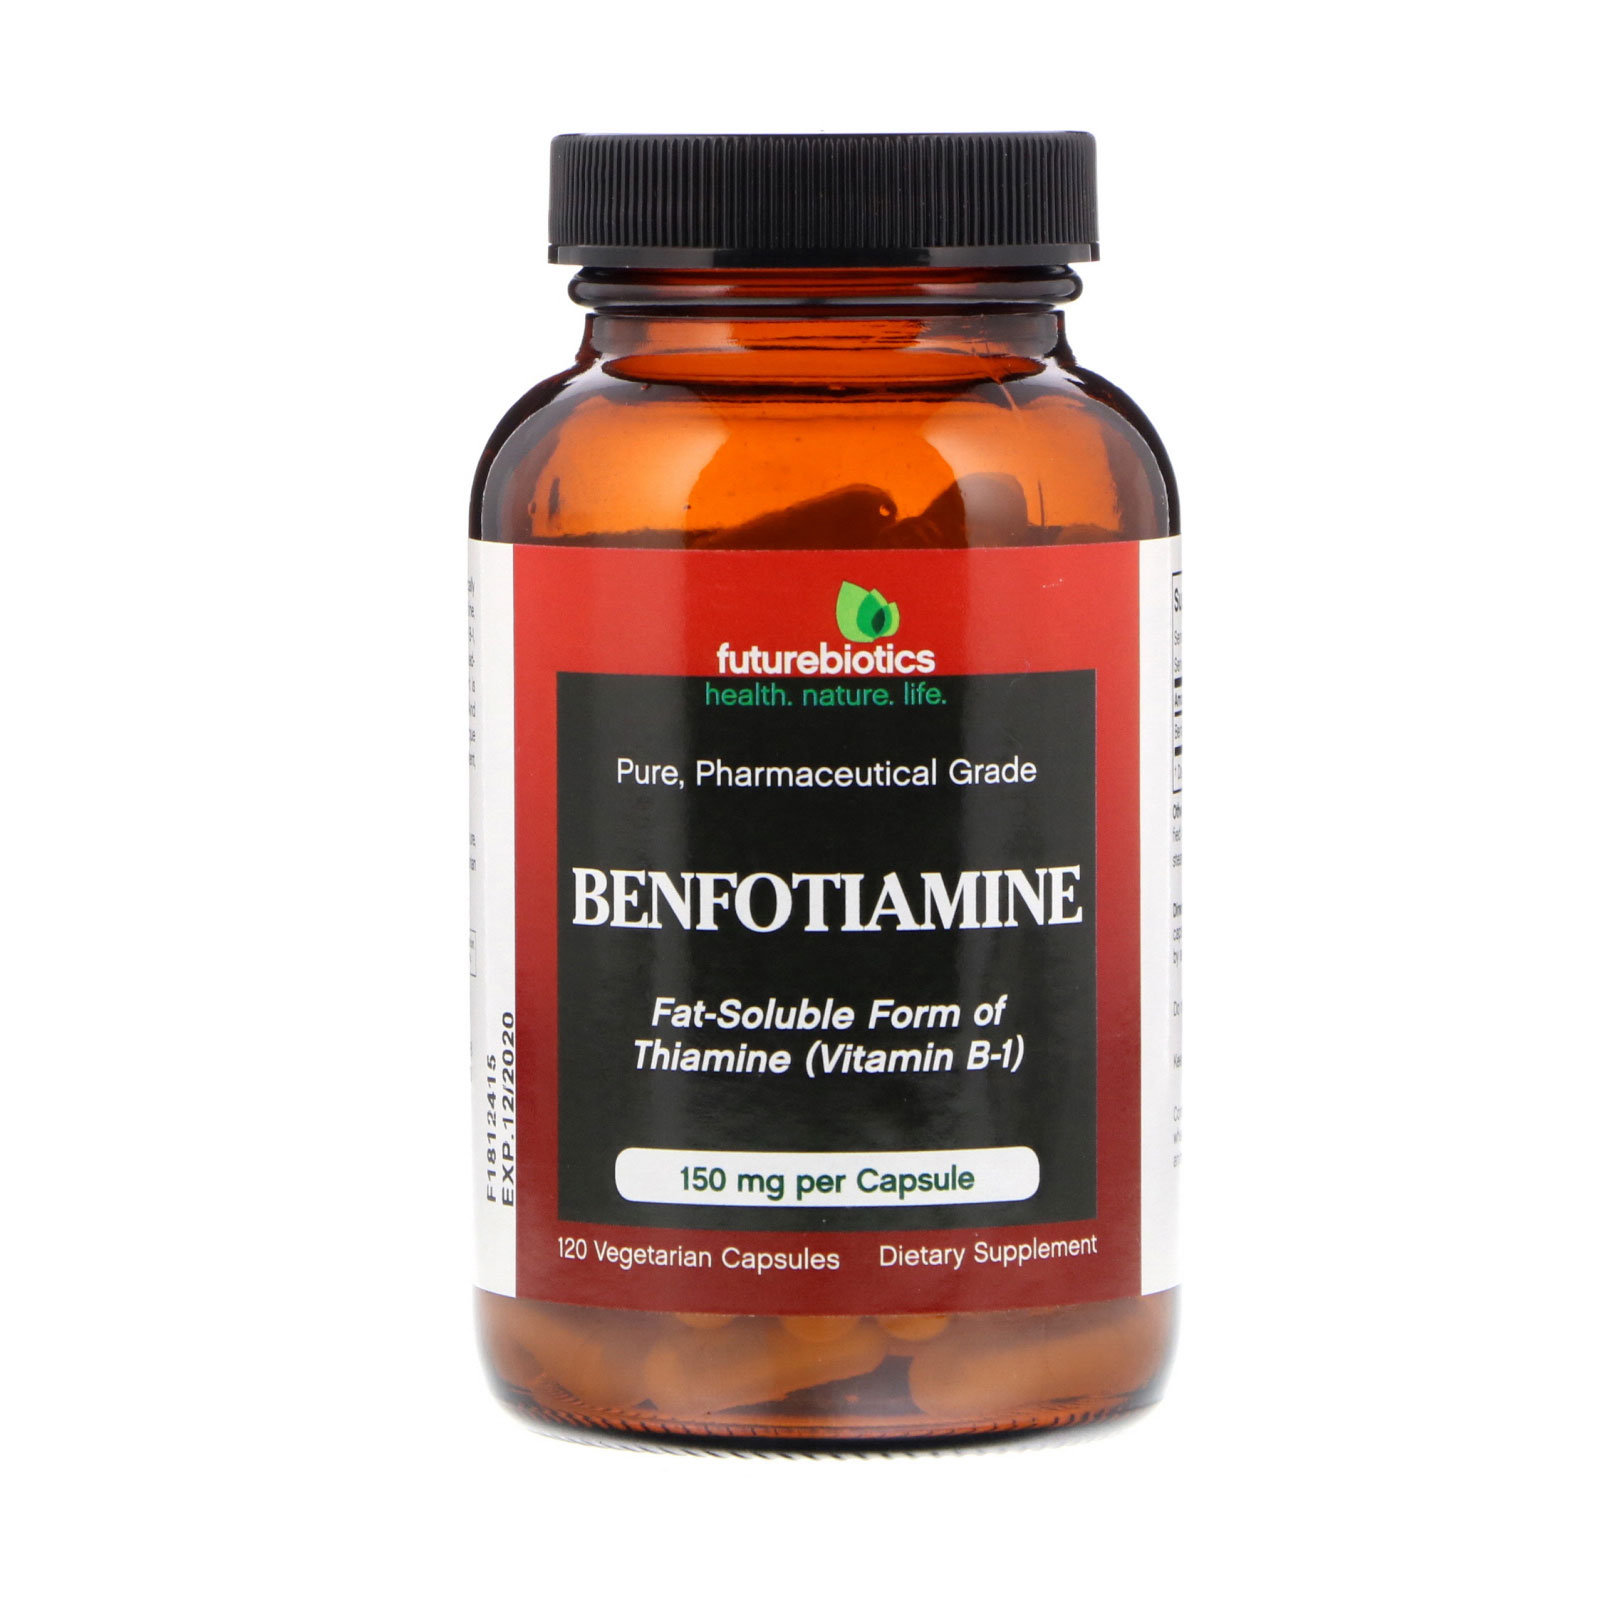 Benfotiamine Fat Soluble Form Of Thiamine Vitamin